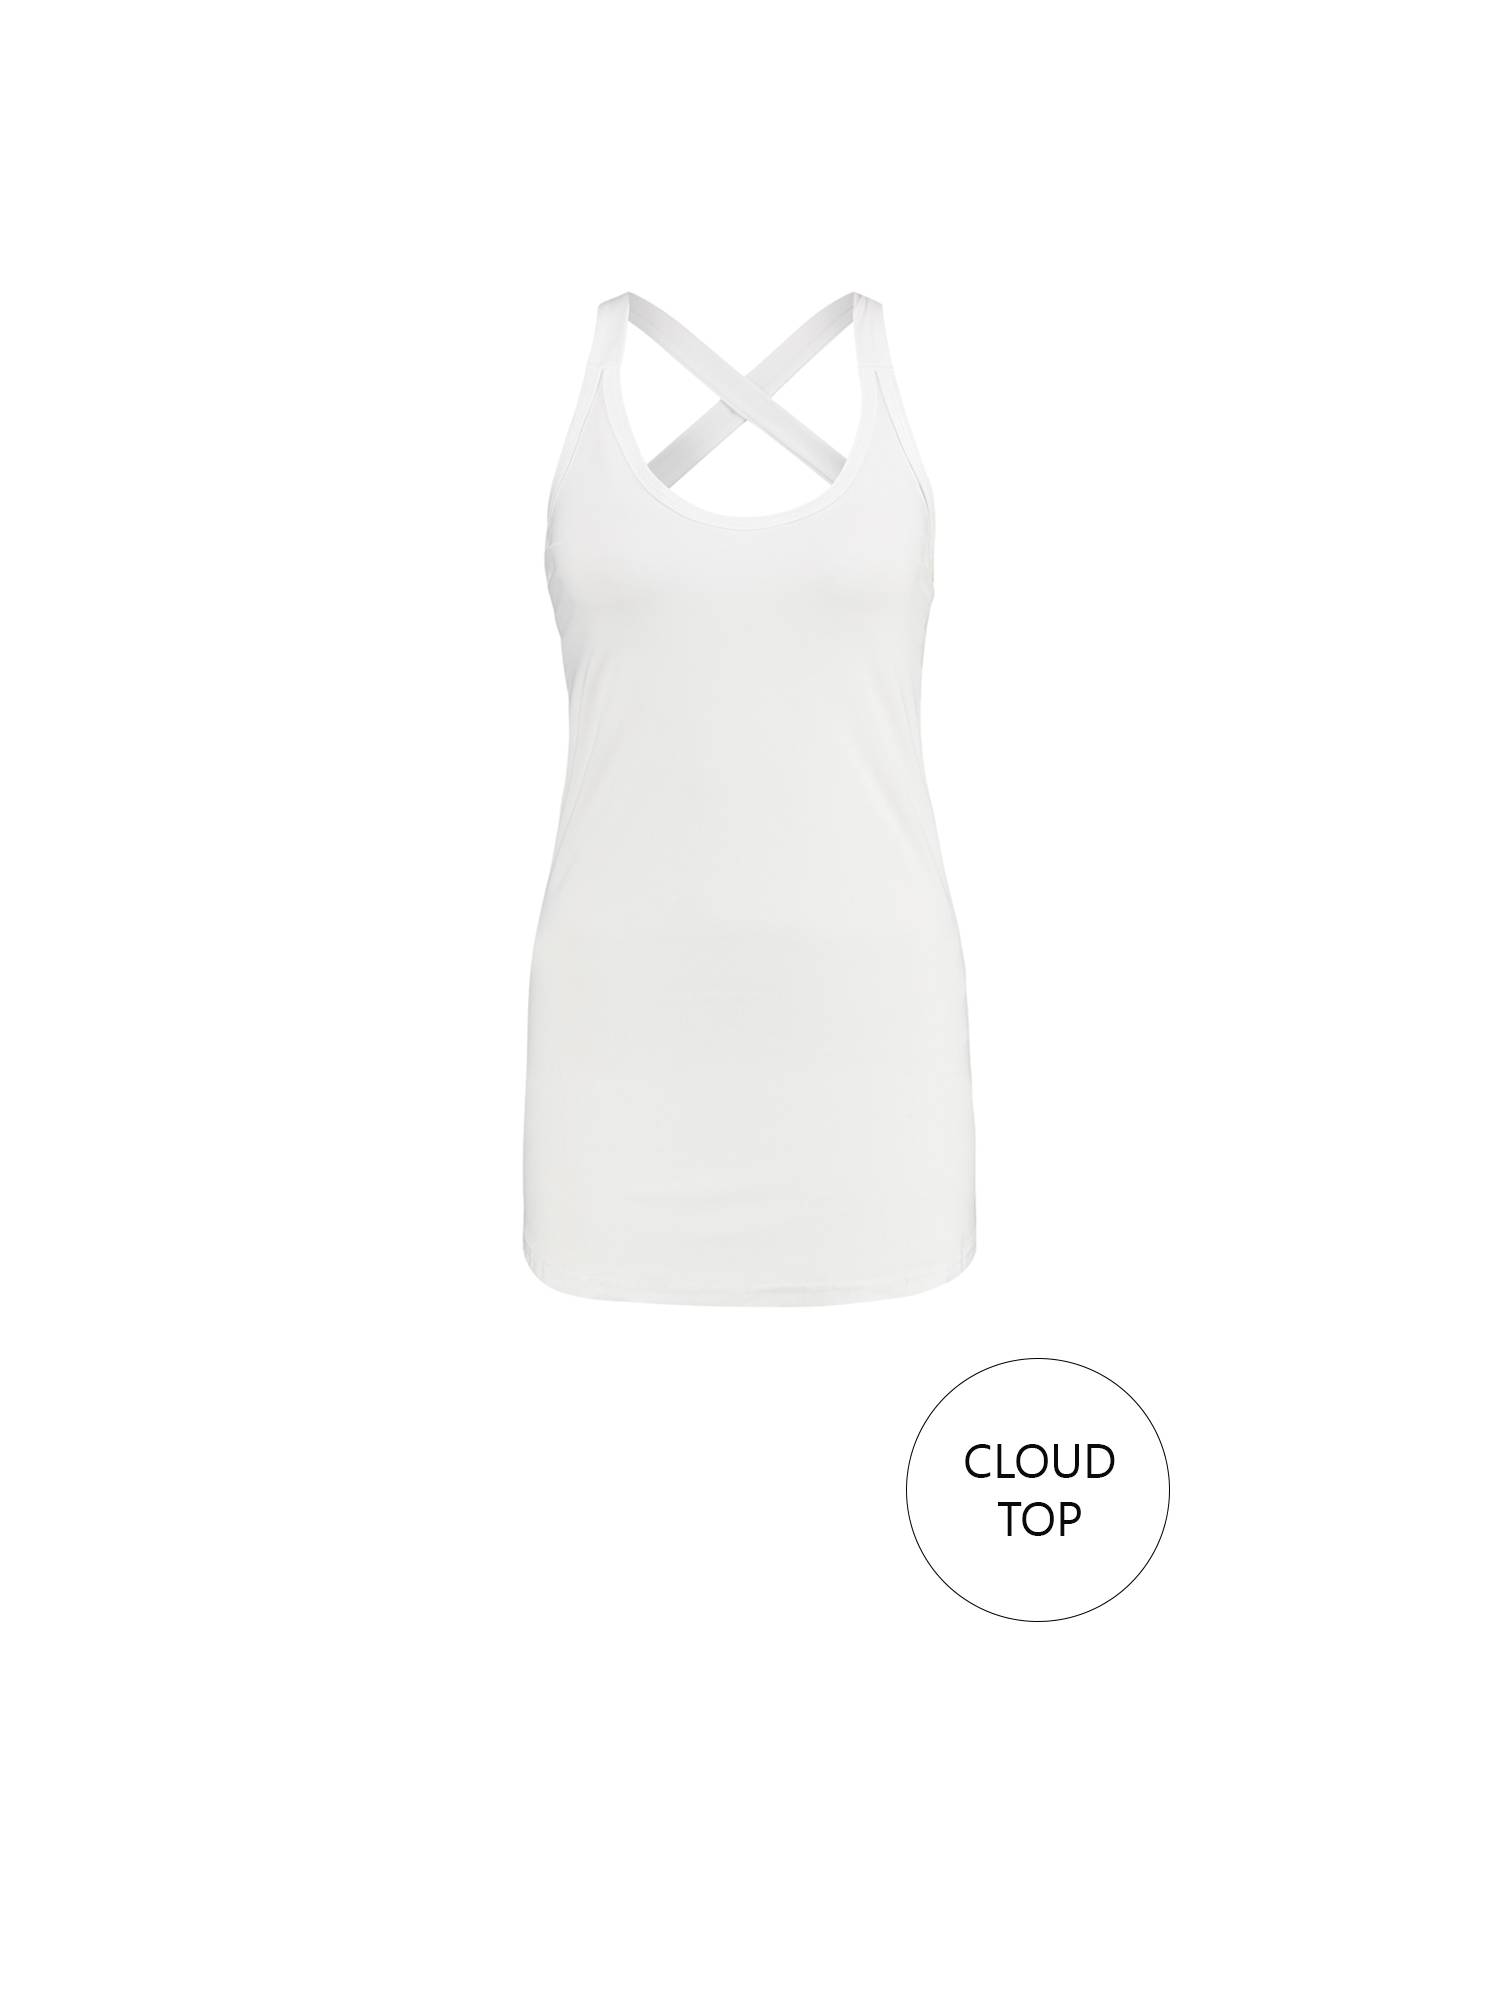 Studio Anneloes Cloud Top 1000 White | Pico Women Fashion & More